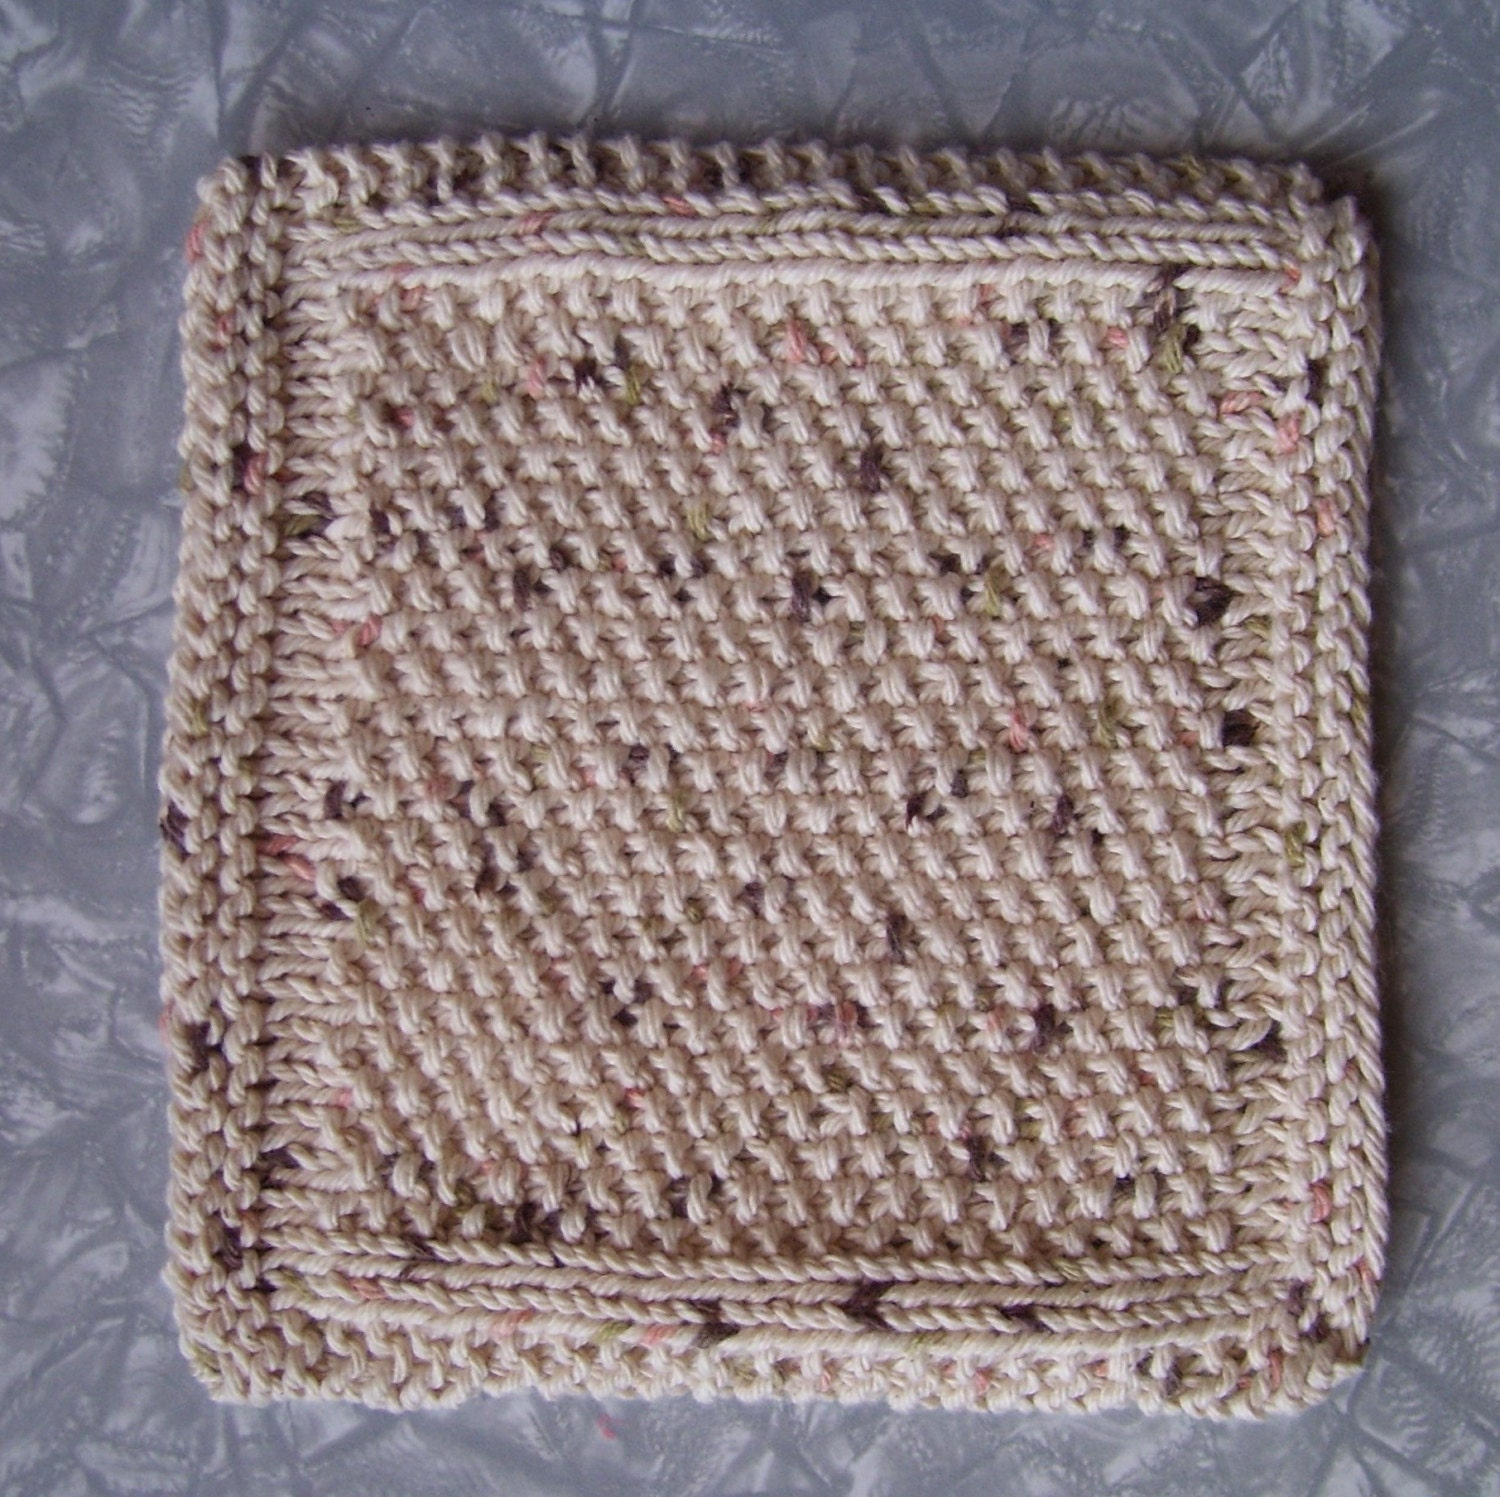 Knitted cotton dishcloth knitted cotton washcloth Home